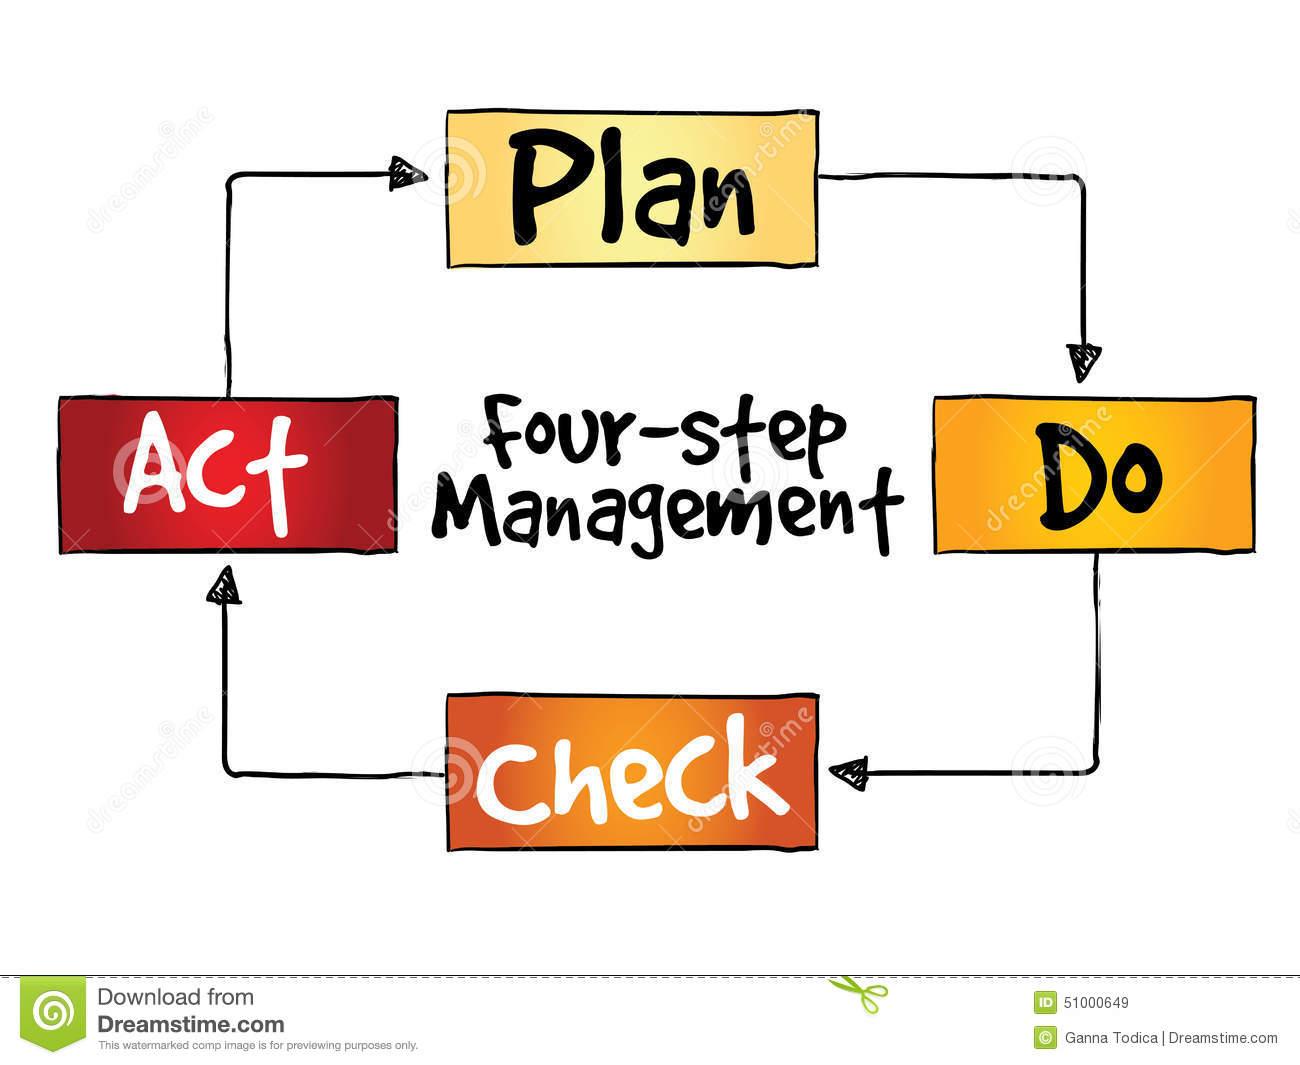 4 Main Steps in Control Process in Management